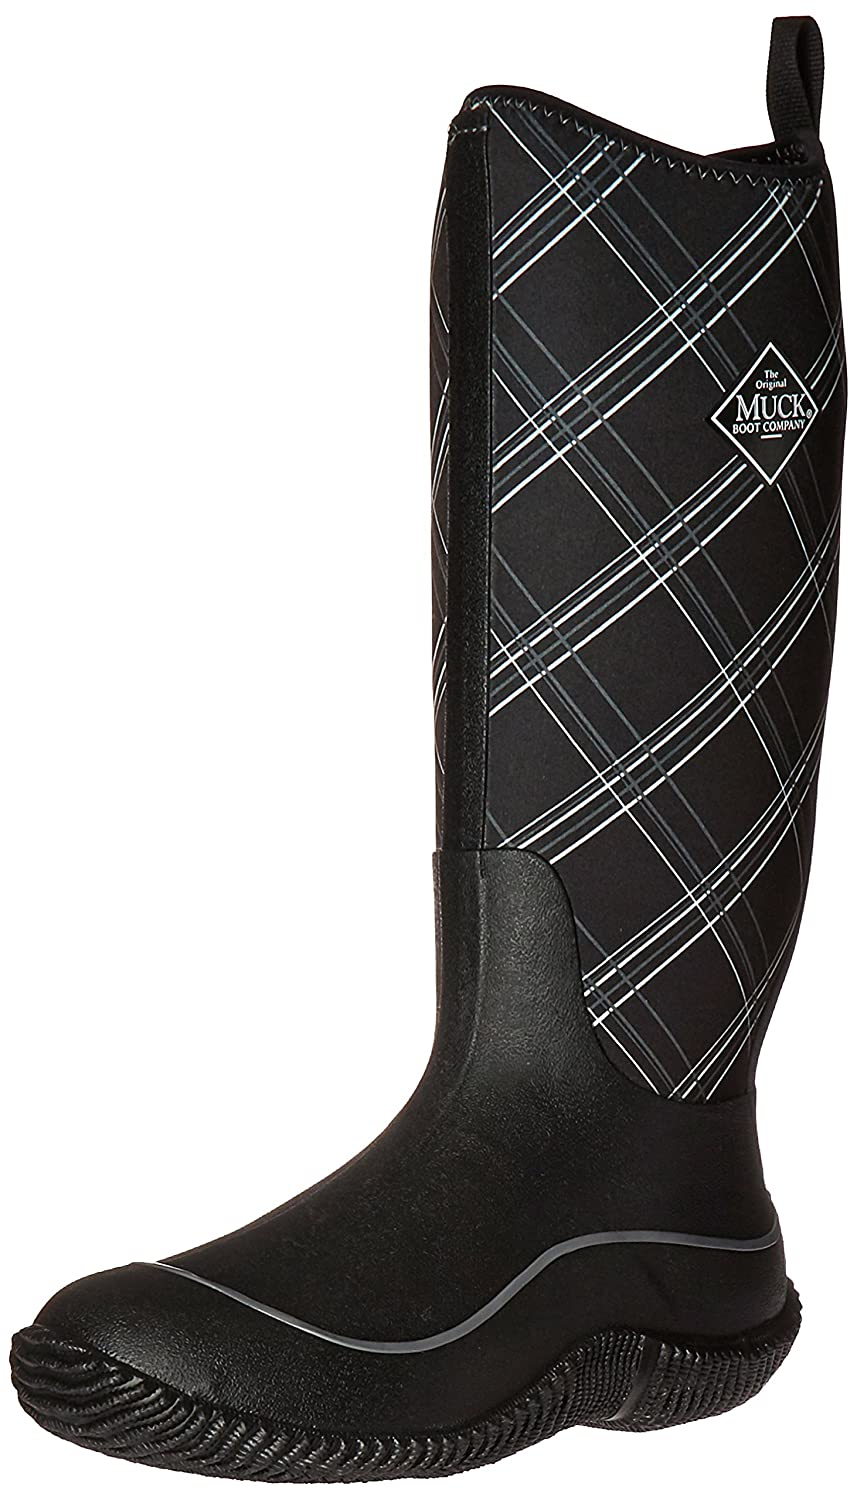 MuckBoots Women's Hale Plaid Boot B01IQ6YZ96 7 B(M) US|Black/Gray Plaid